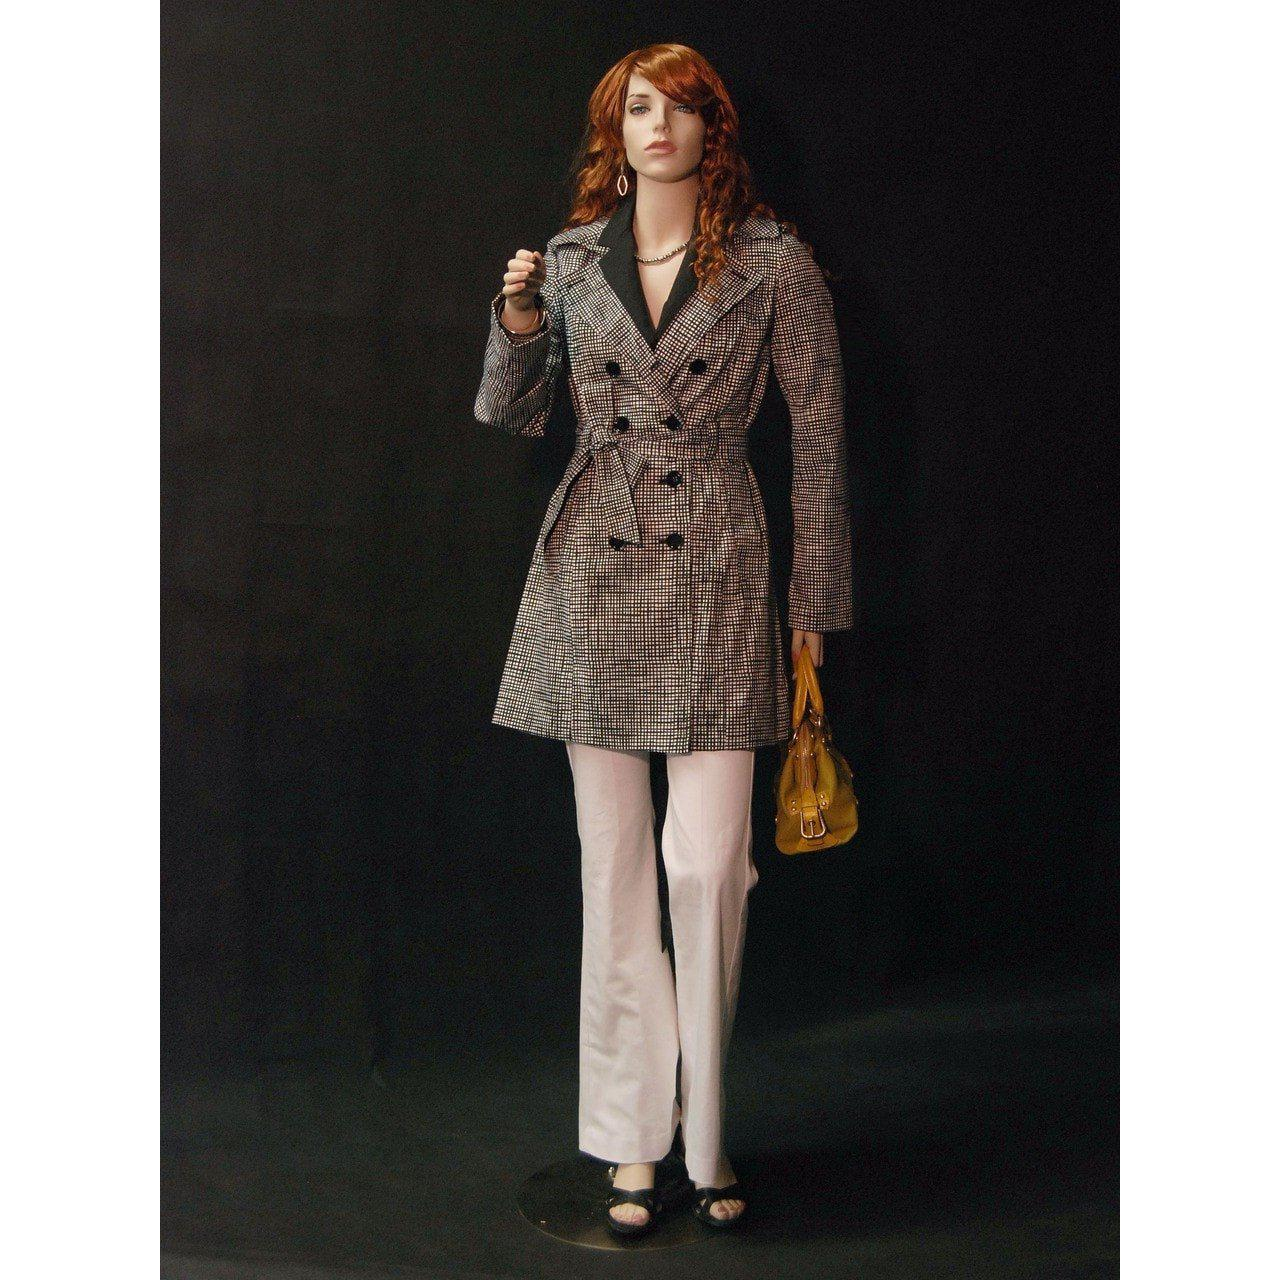 Mannequin Mall Realistic Female Mannequin with Bendable Arms MM-192 For Fashion Stores and Retail Shops